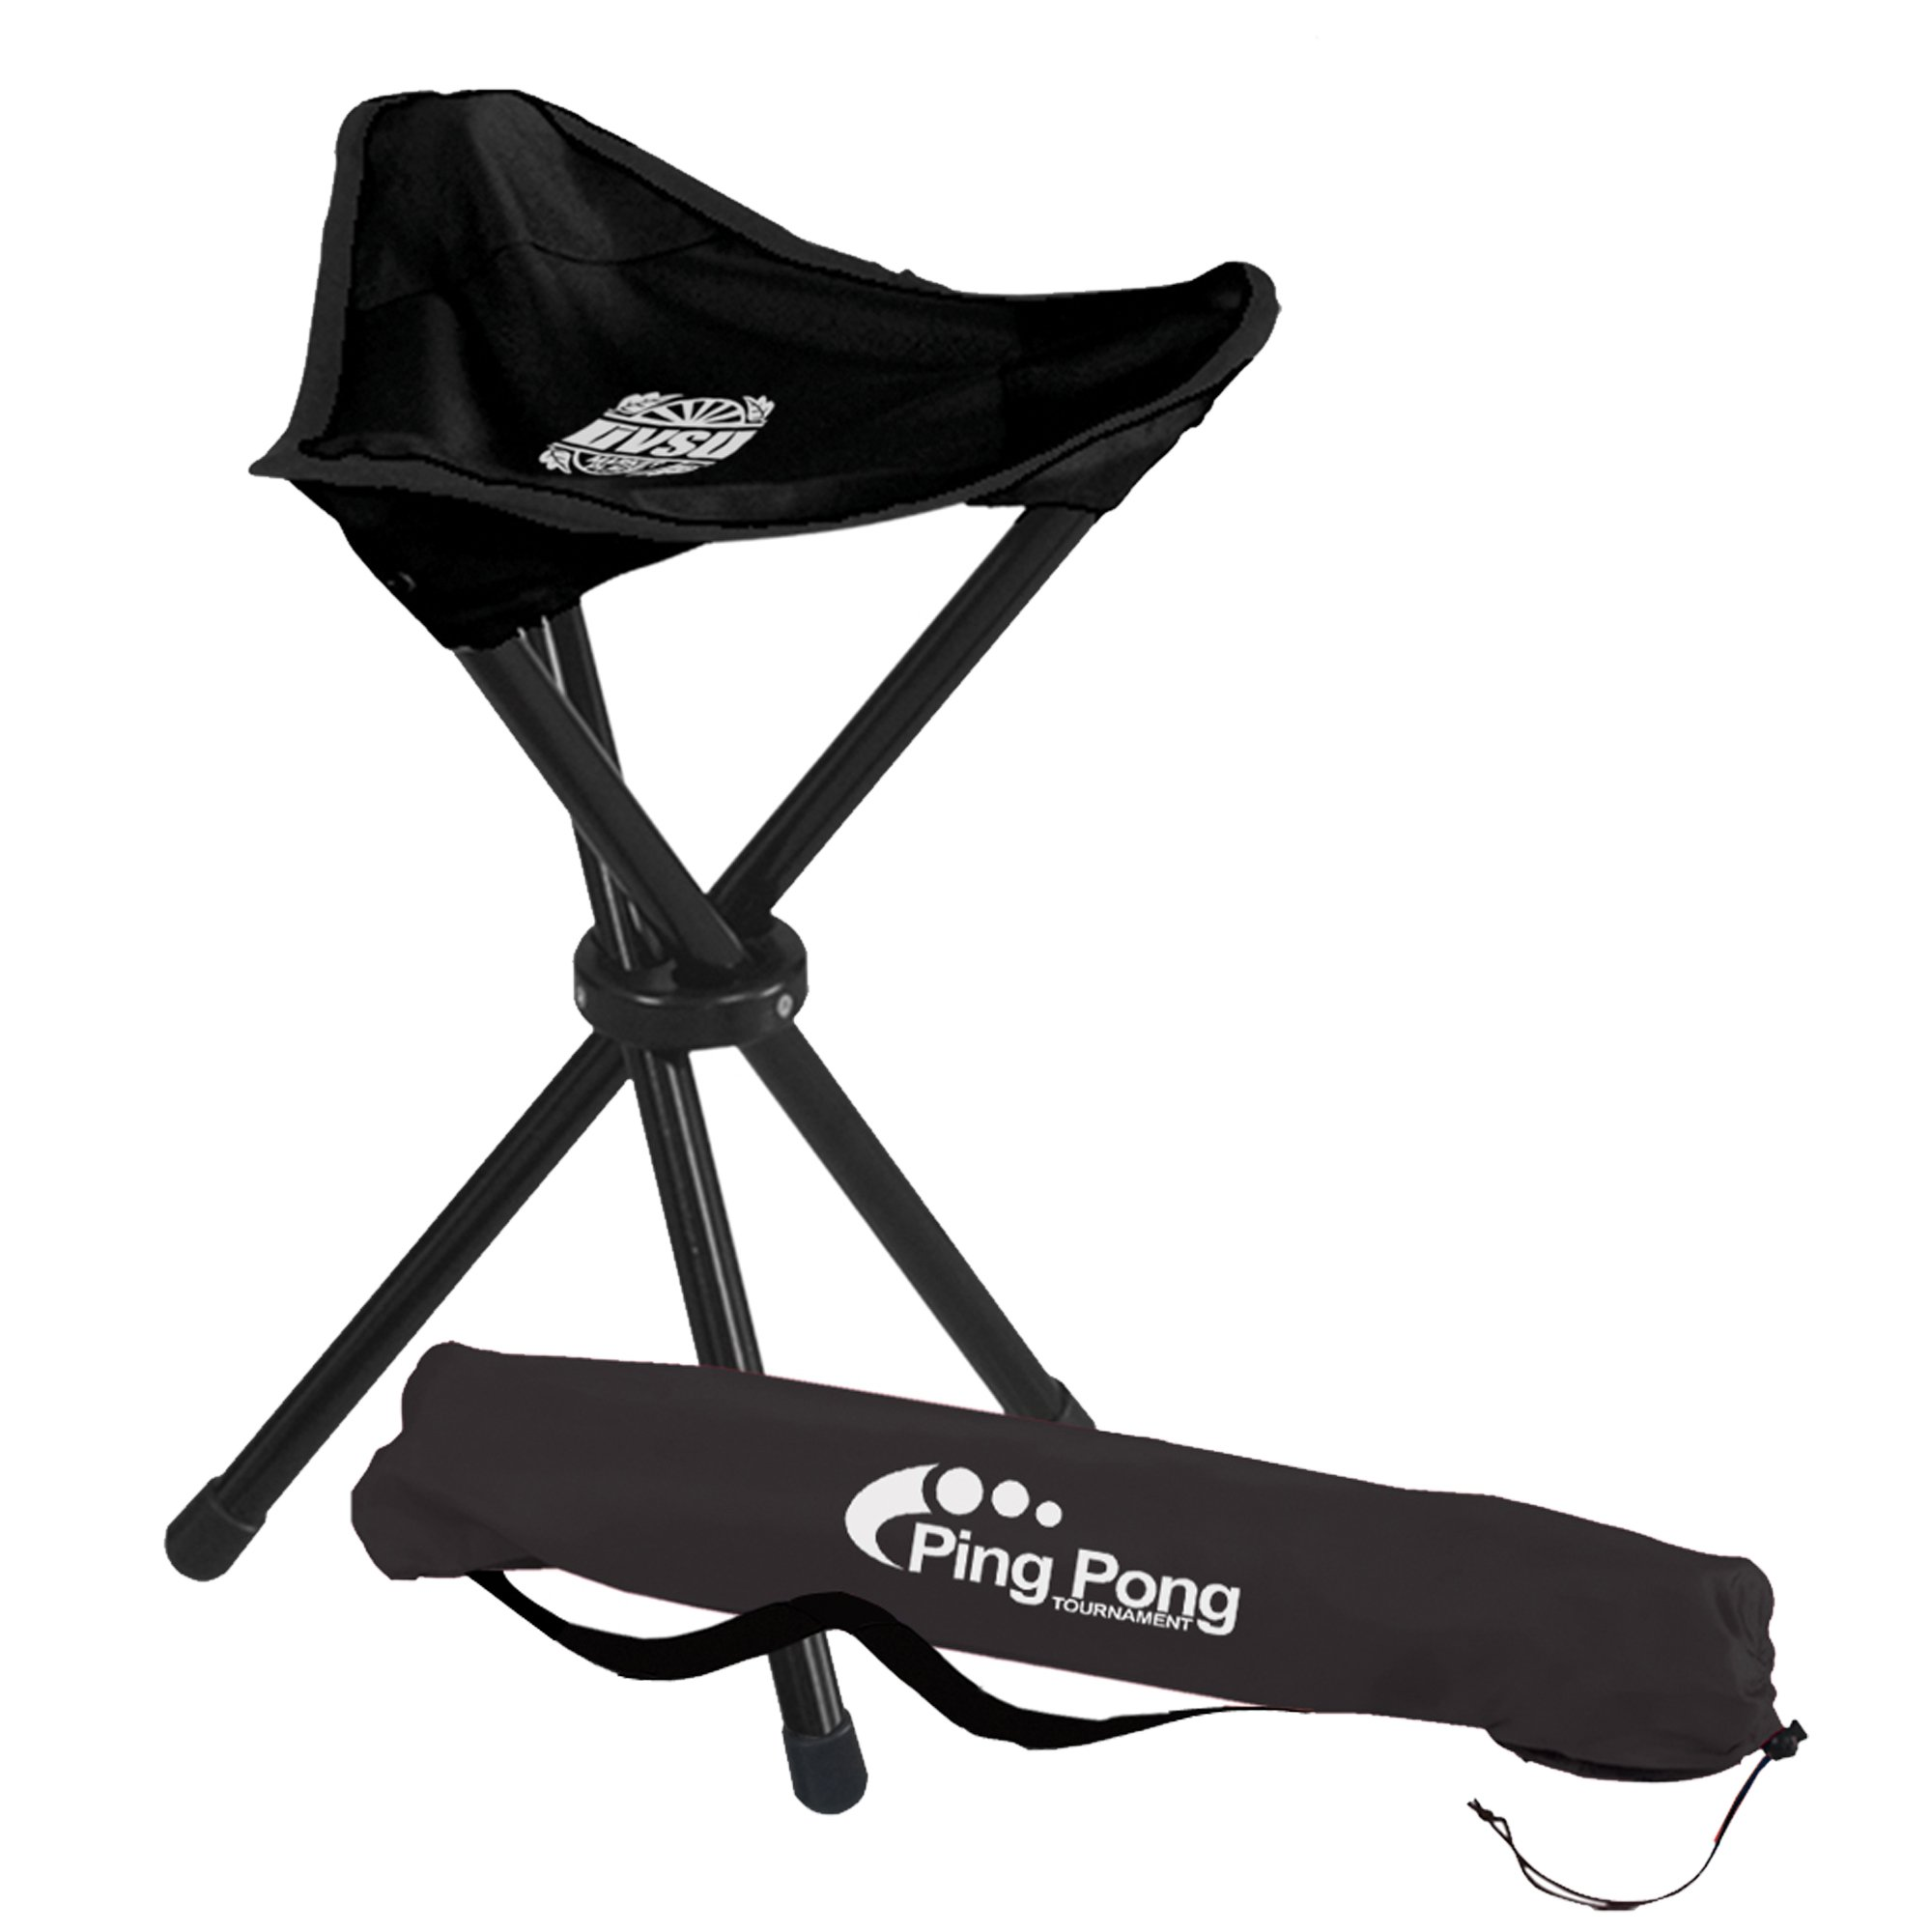 Buy Promotional Folding Tripod Stool With Carrying Bag At